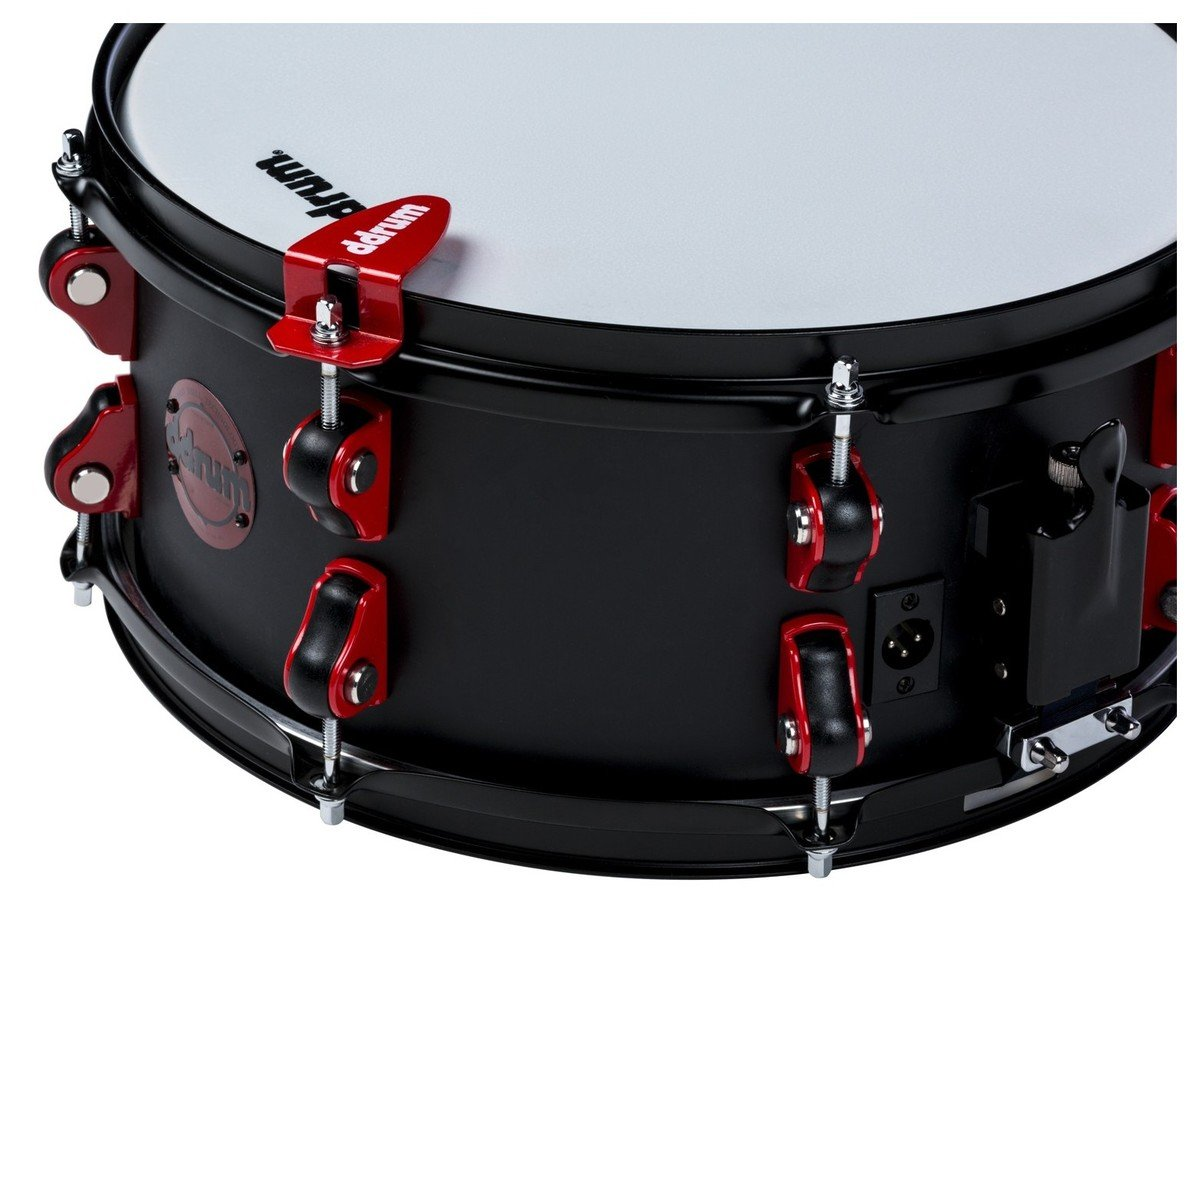 Ddrum Hybrid Snare Drum with Trigger 13 x 6 in. Satin Black by Ddrum